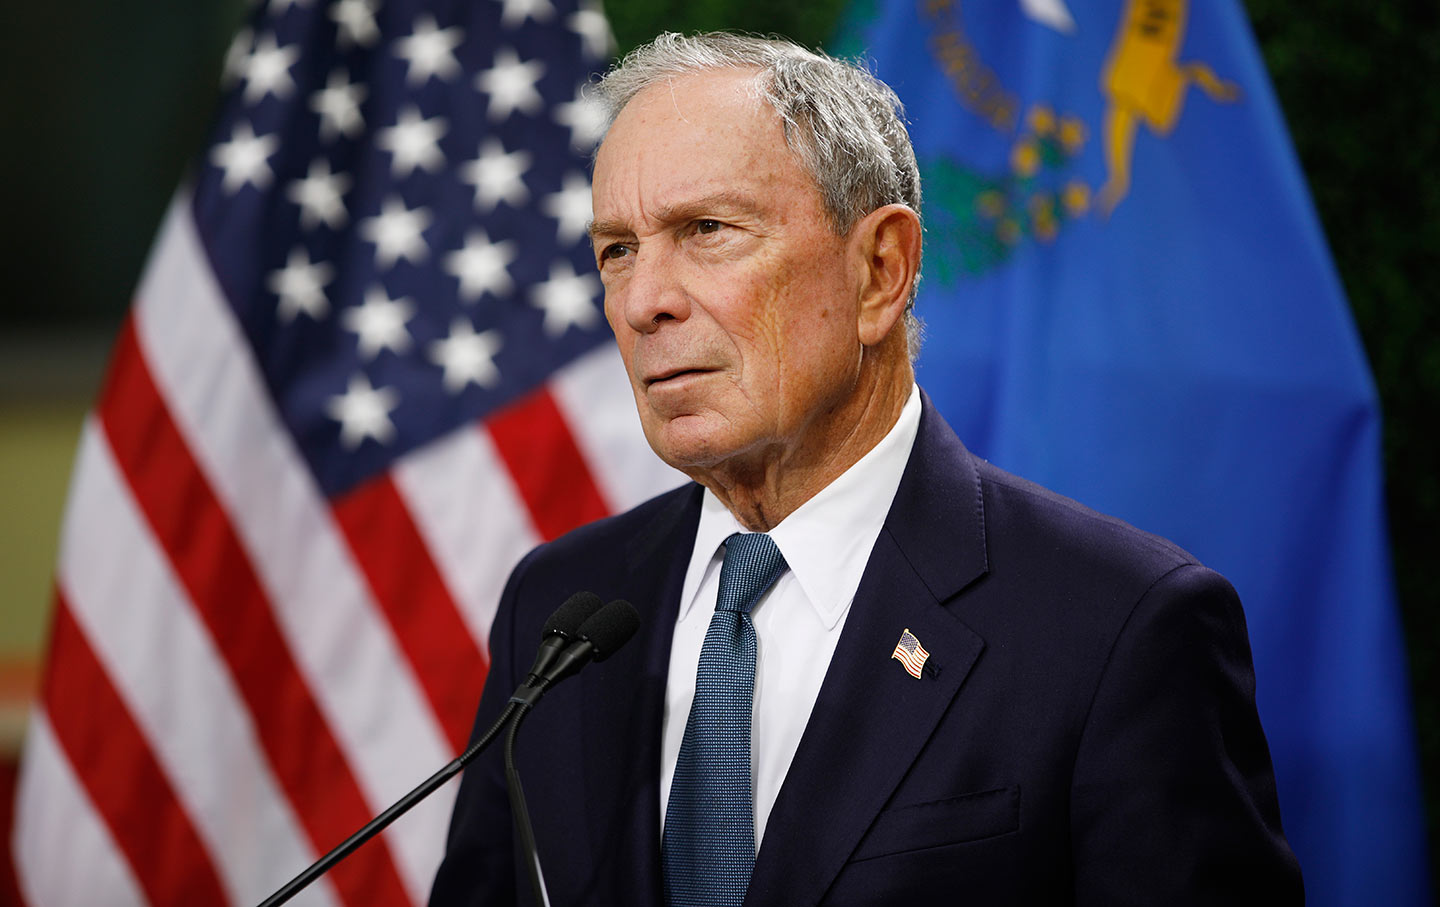 The Nation - Why Is the Media So Obsessed With Michael Bloomberg?